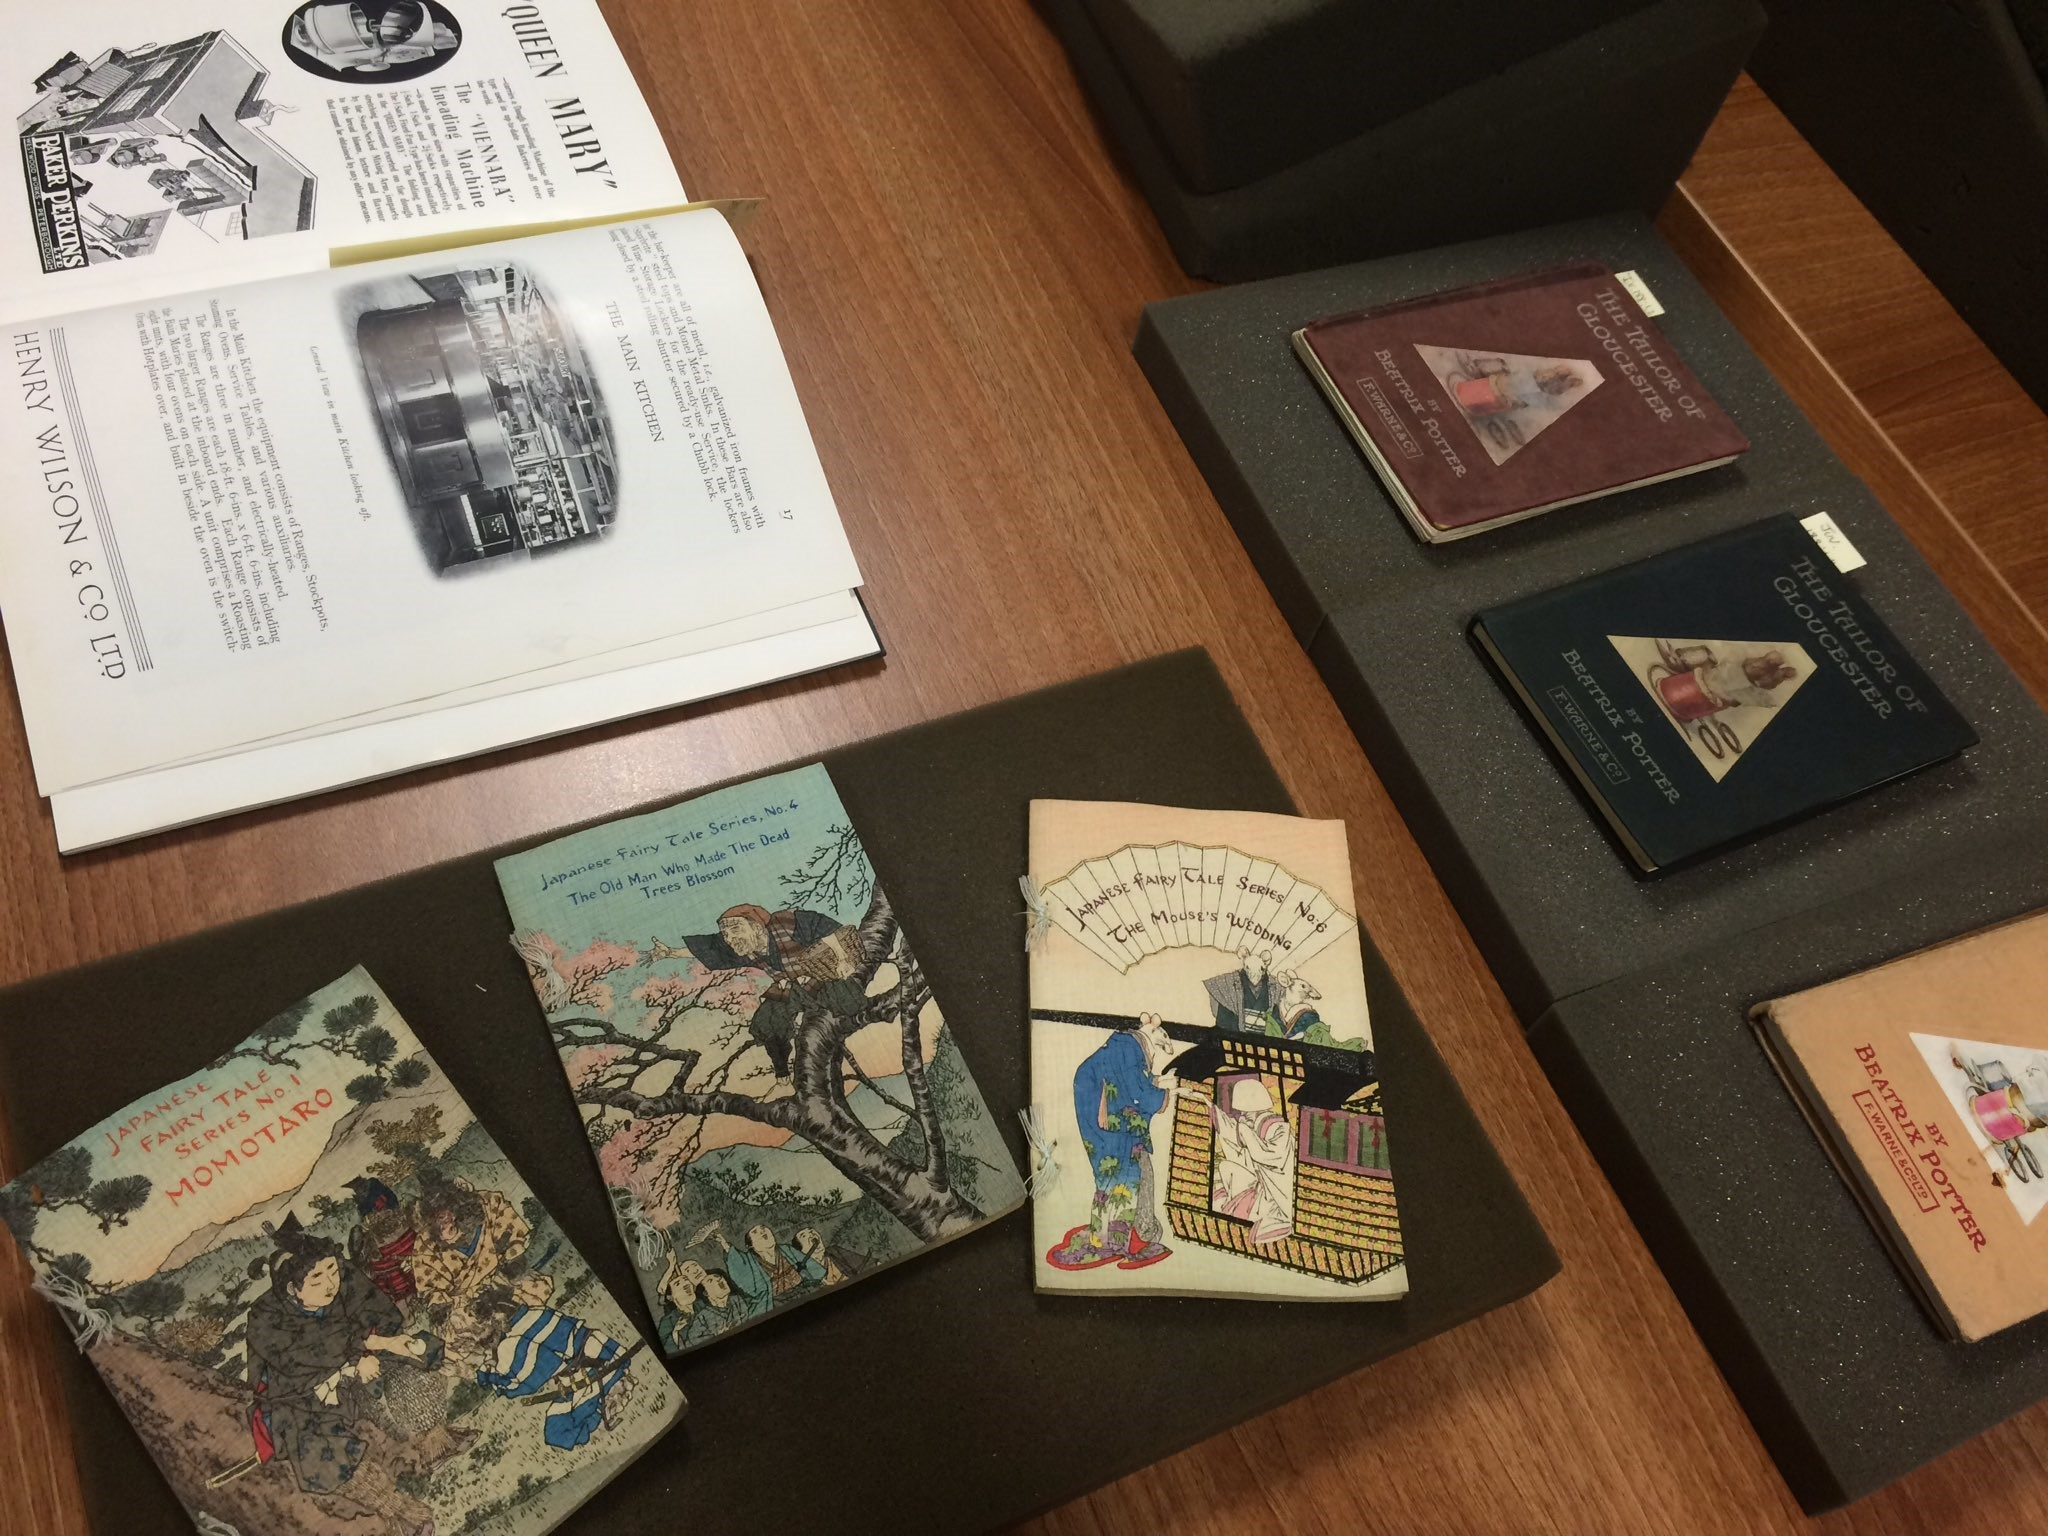 Margins and mainstream books display at the University of Liverpool Special Collections and Archives